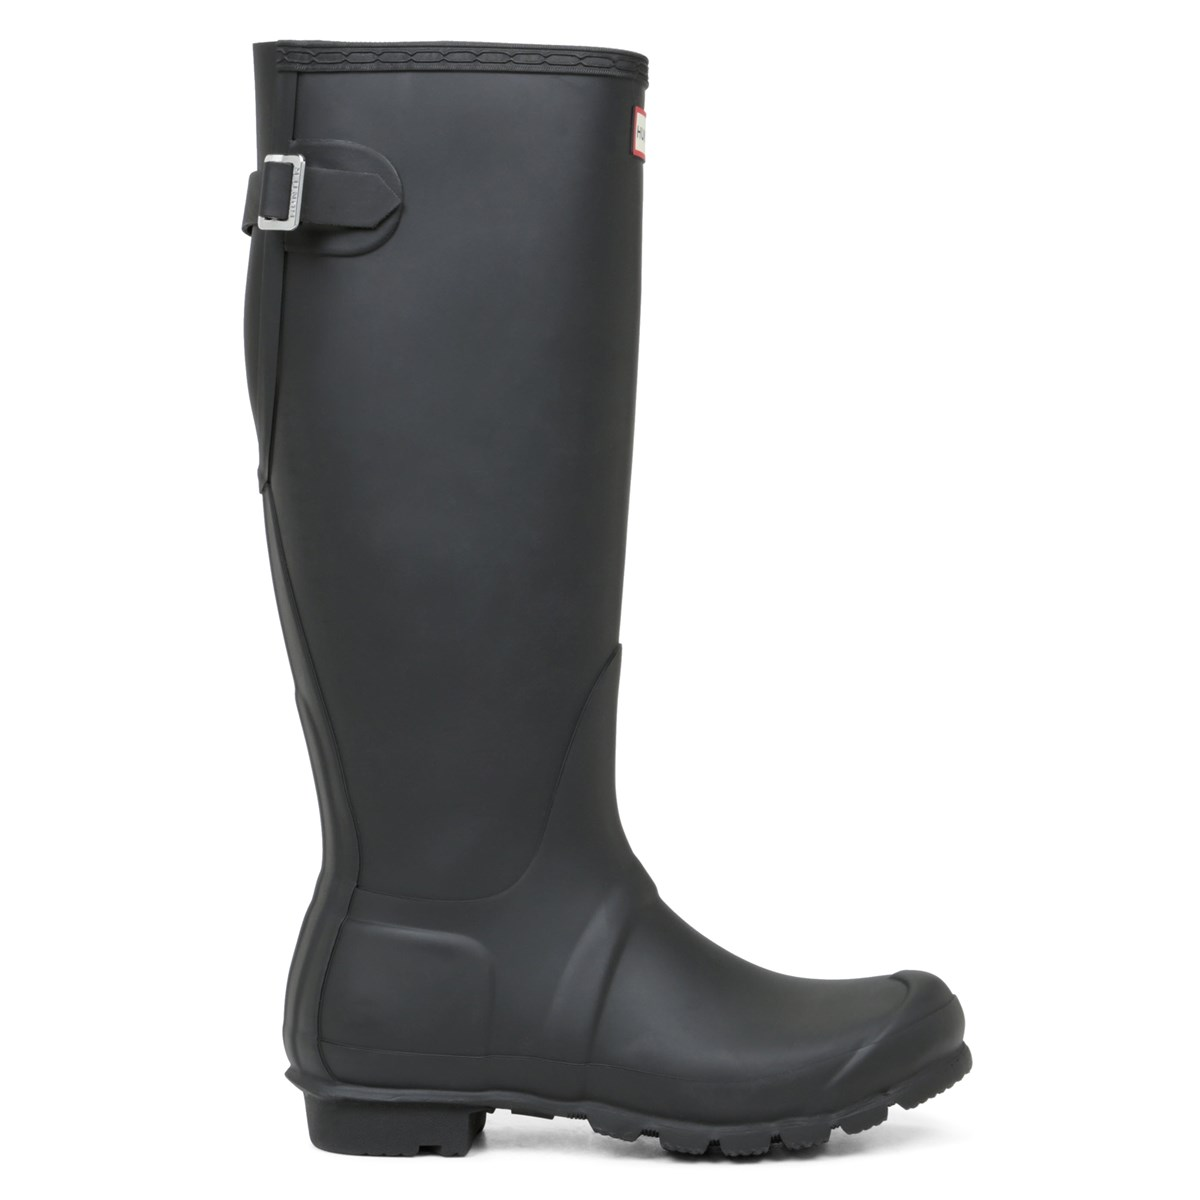 Women's Original Back Adjustable Black Rain Boots